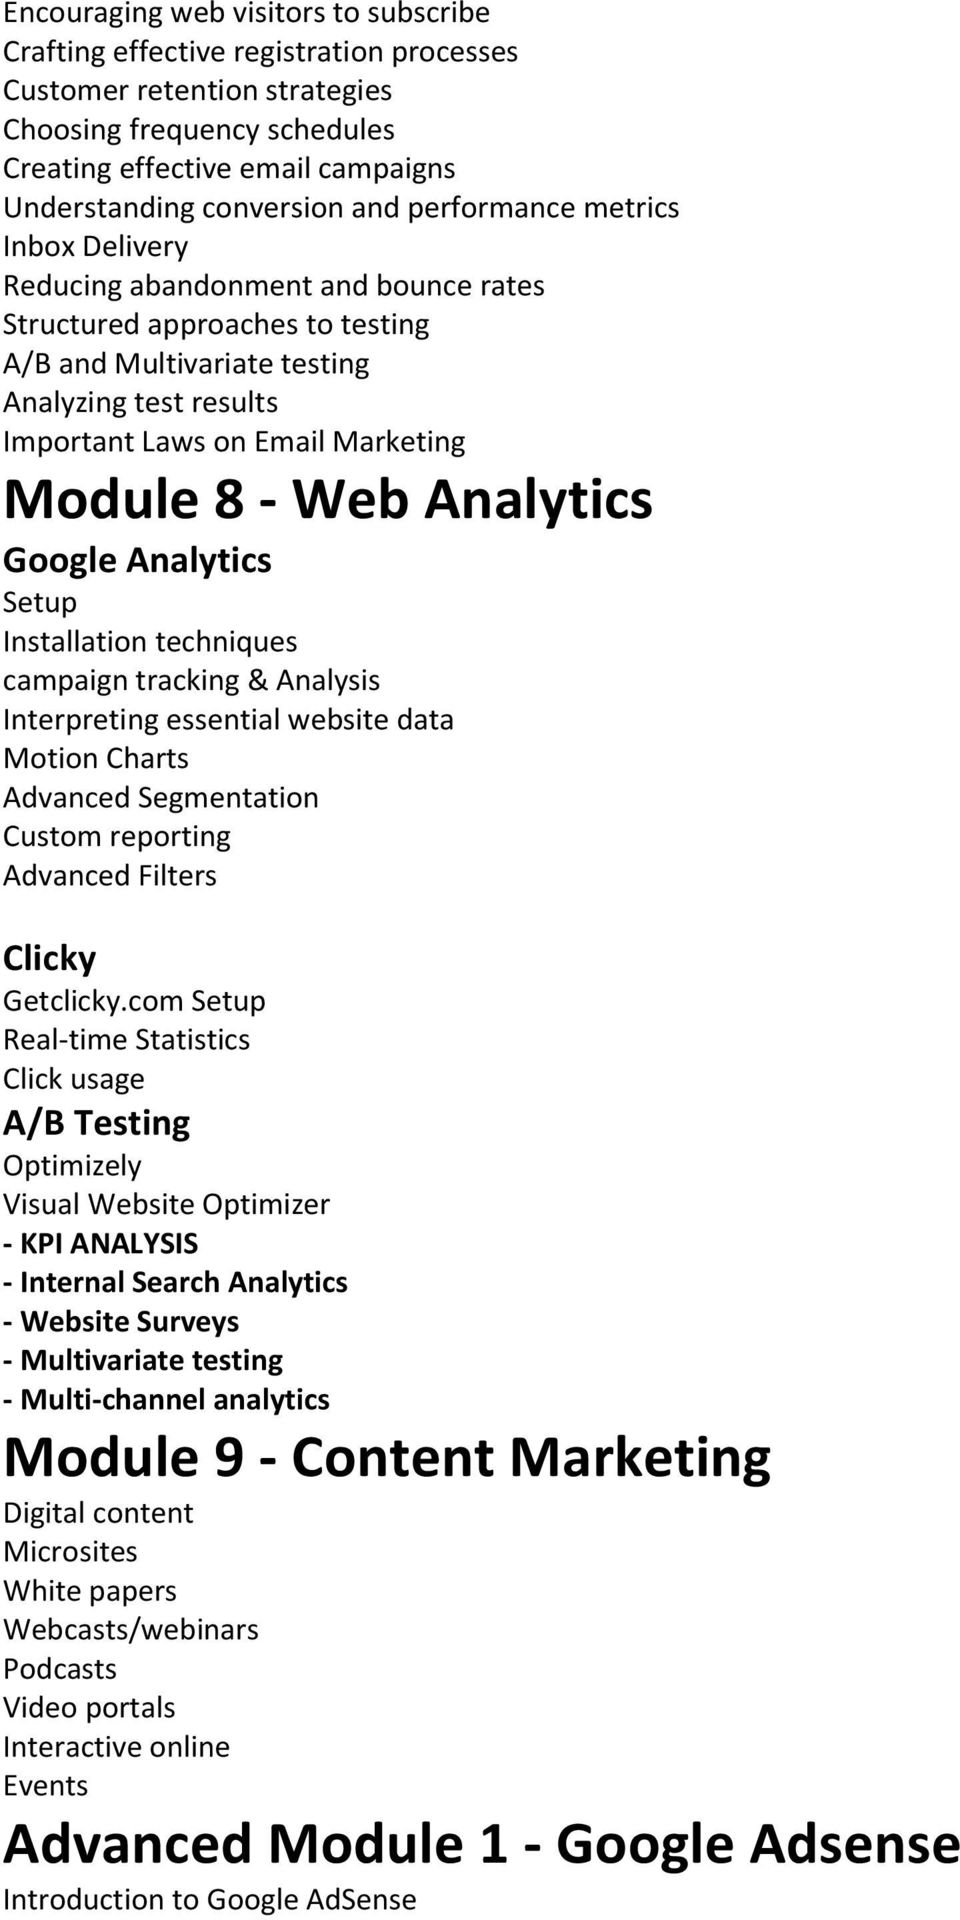 Module 8 - Web Analytics Google Analytics Setup Installation techniques campaign tracking & Analysis Interpreting essential website data Motion Charts Advanced Segmentation Custom reporting Advanced